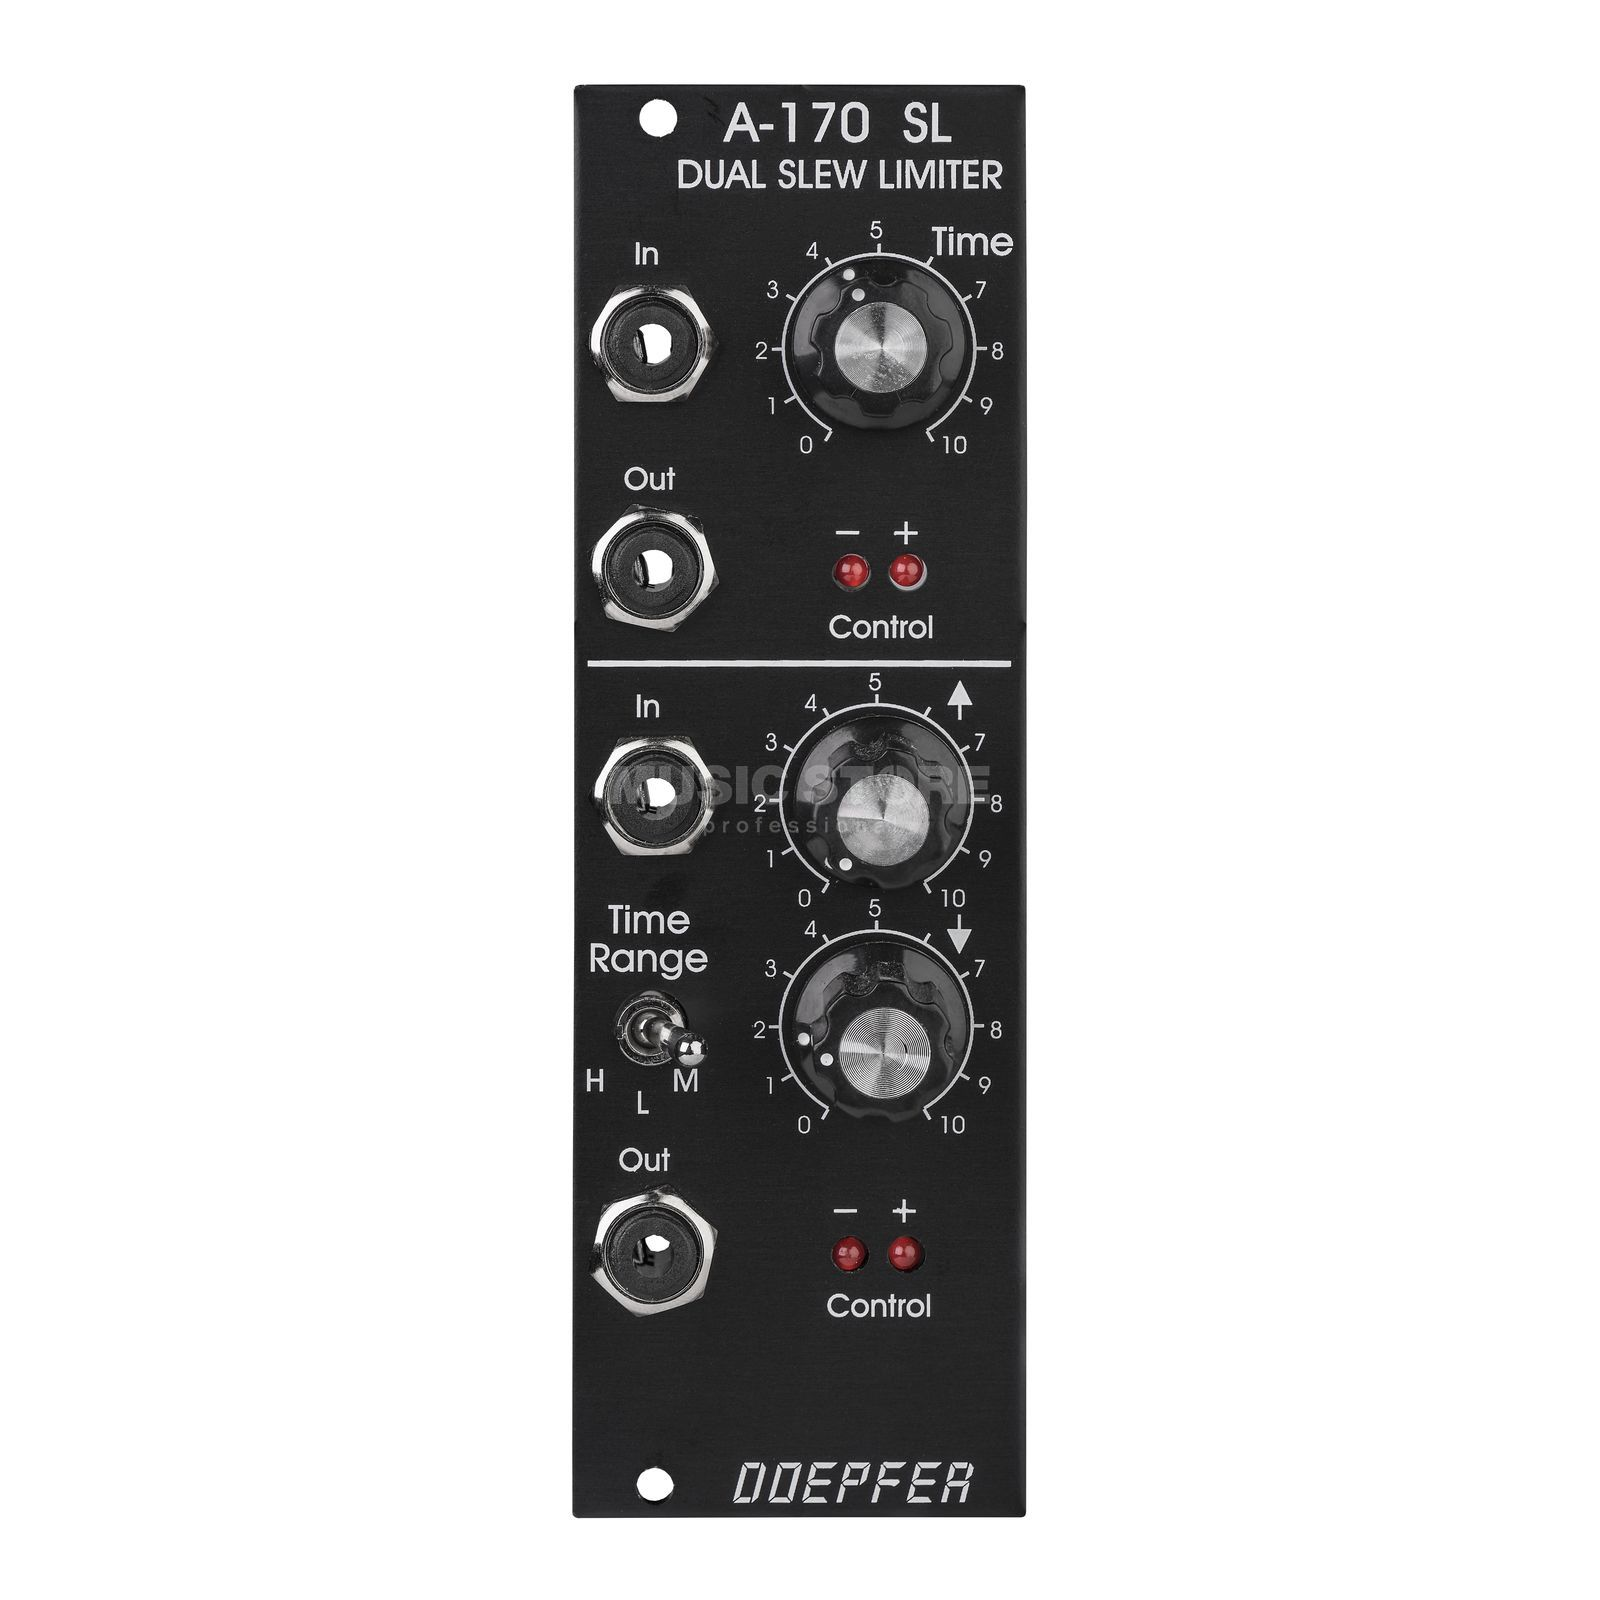 Doepfer A-170V Dual Slew Limiter Vintage Ed. Immagine prodotto